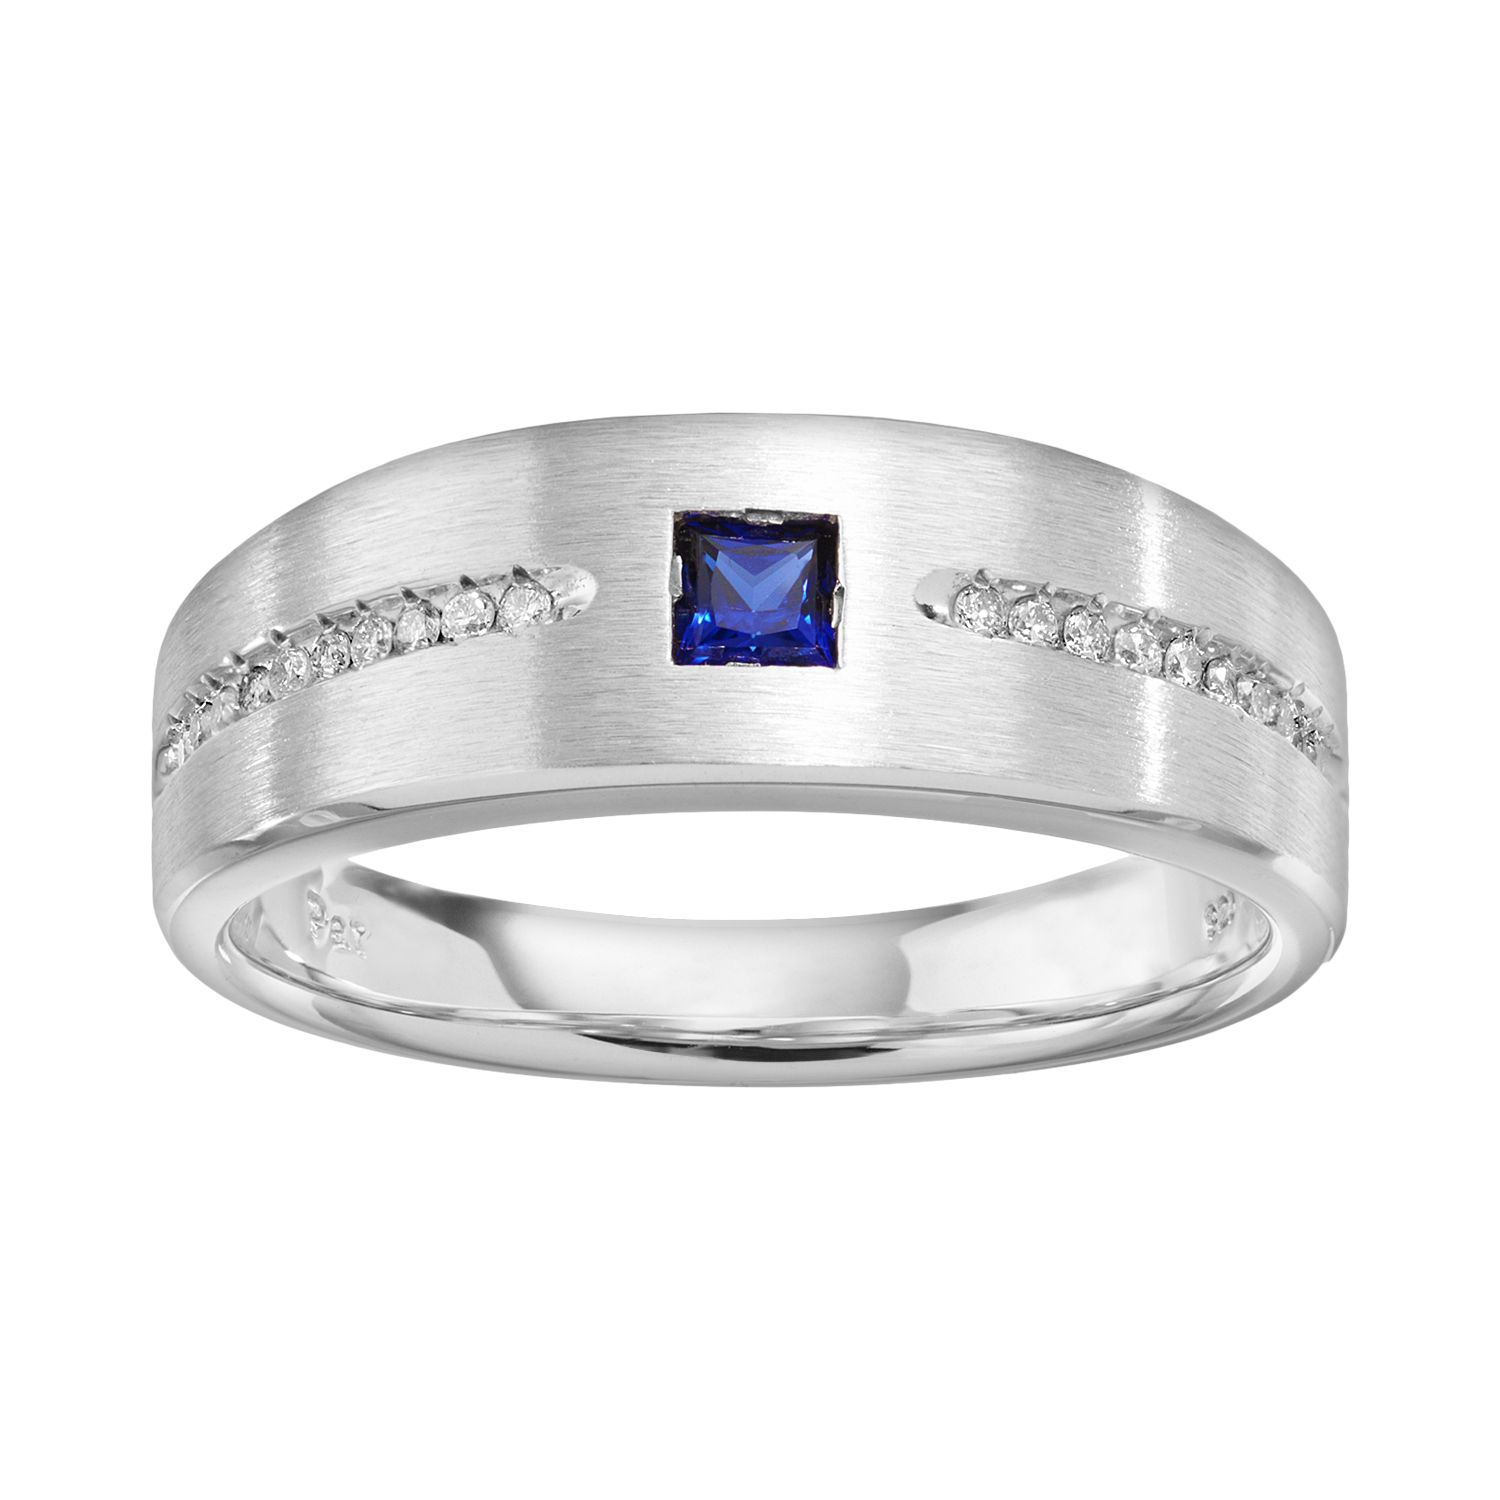 Mens Sapphire Wedding Bands Rings Jewelry Kohls